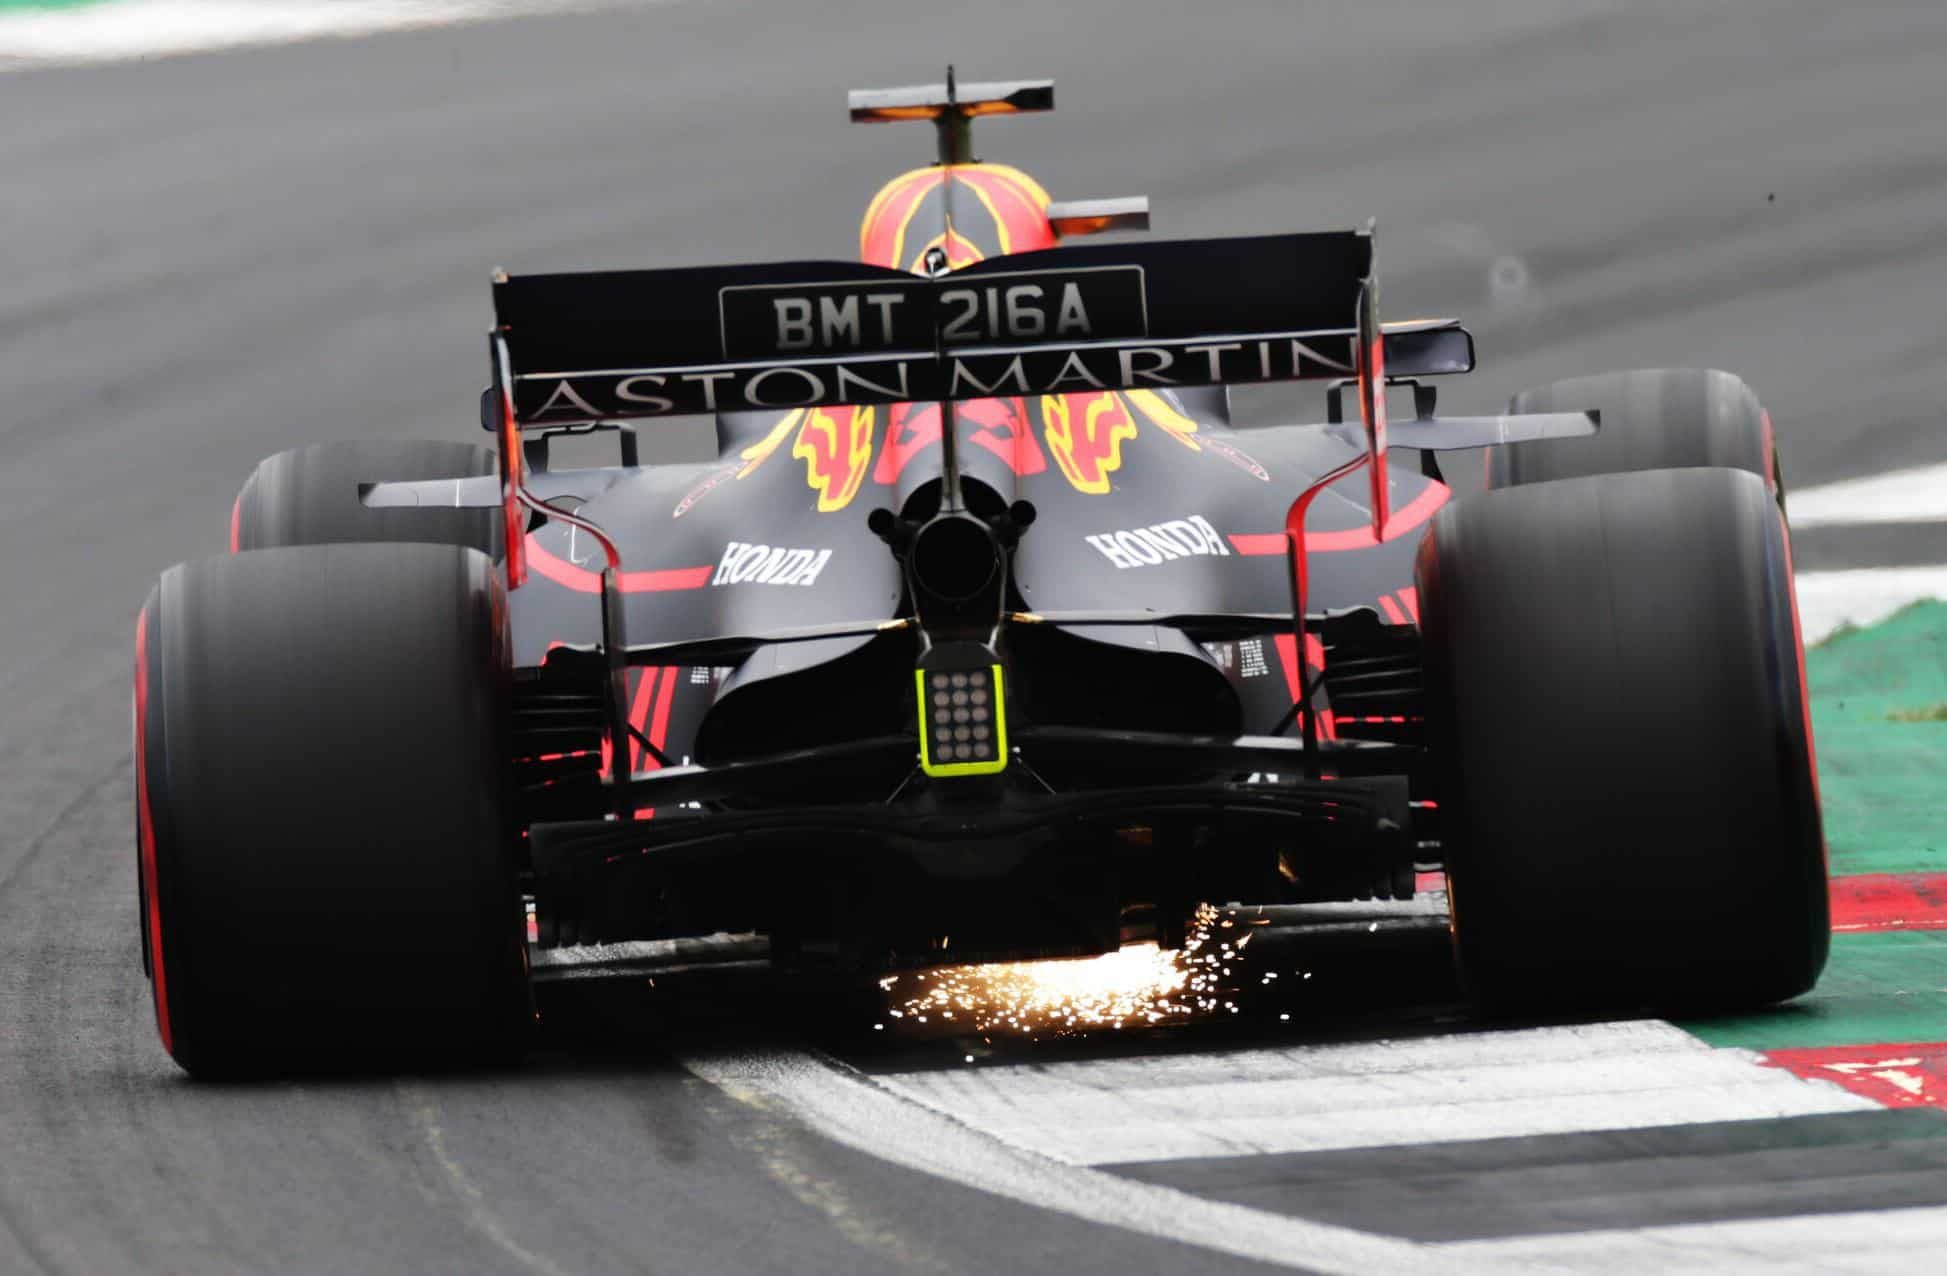 Max Verstappen Red Bull RB15 rear end sparks FP3 British GP F1 2019 Photo Red Bull